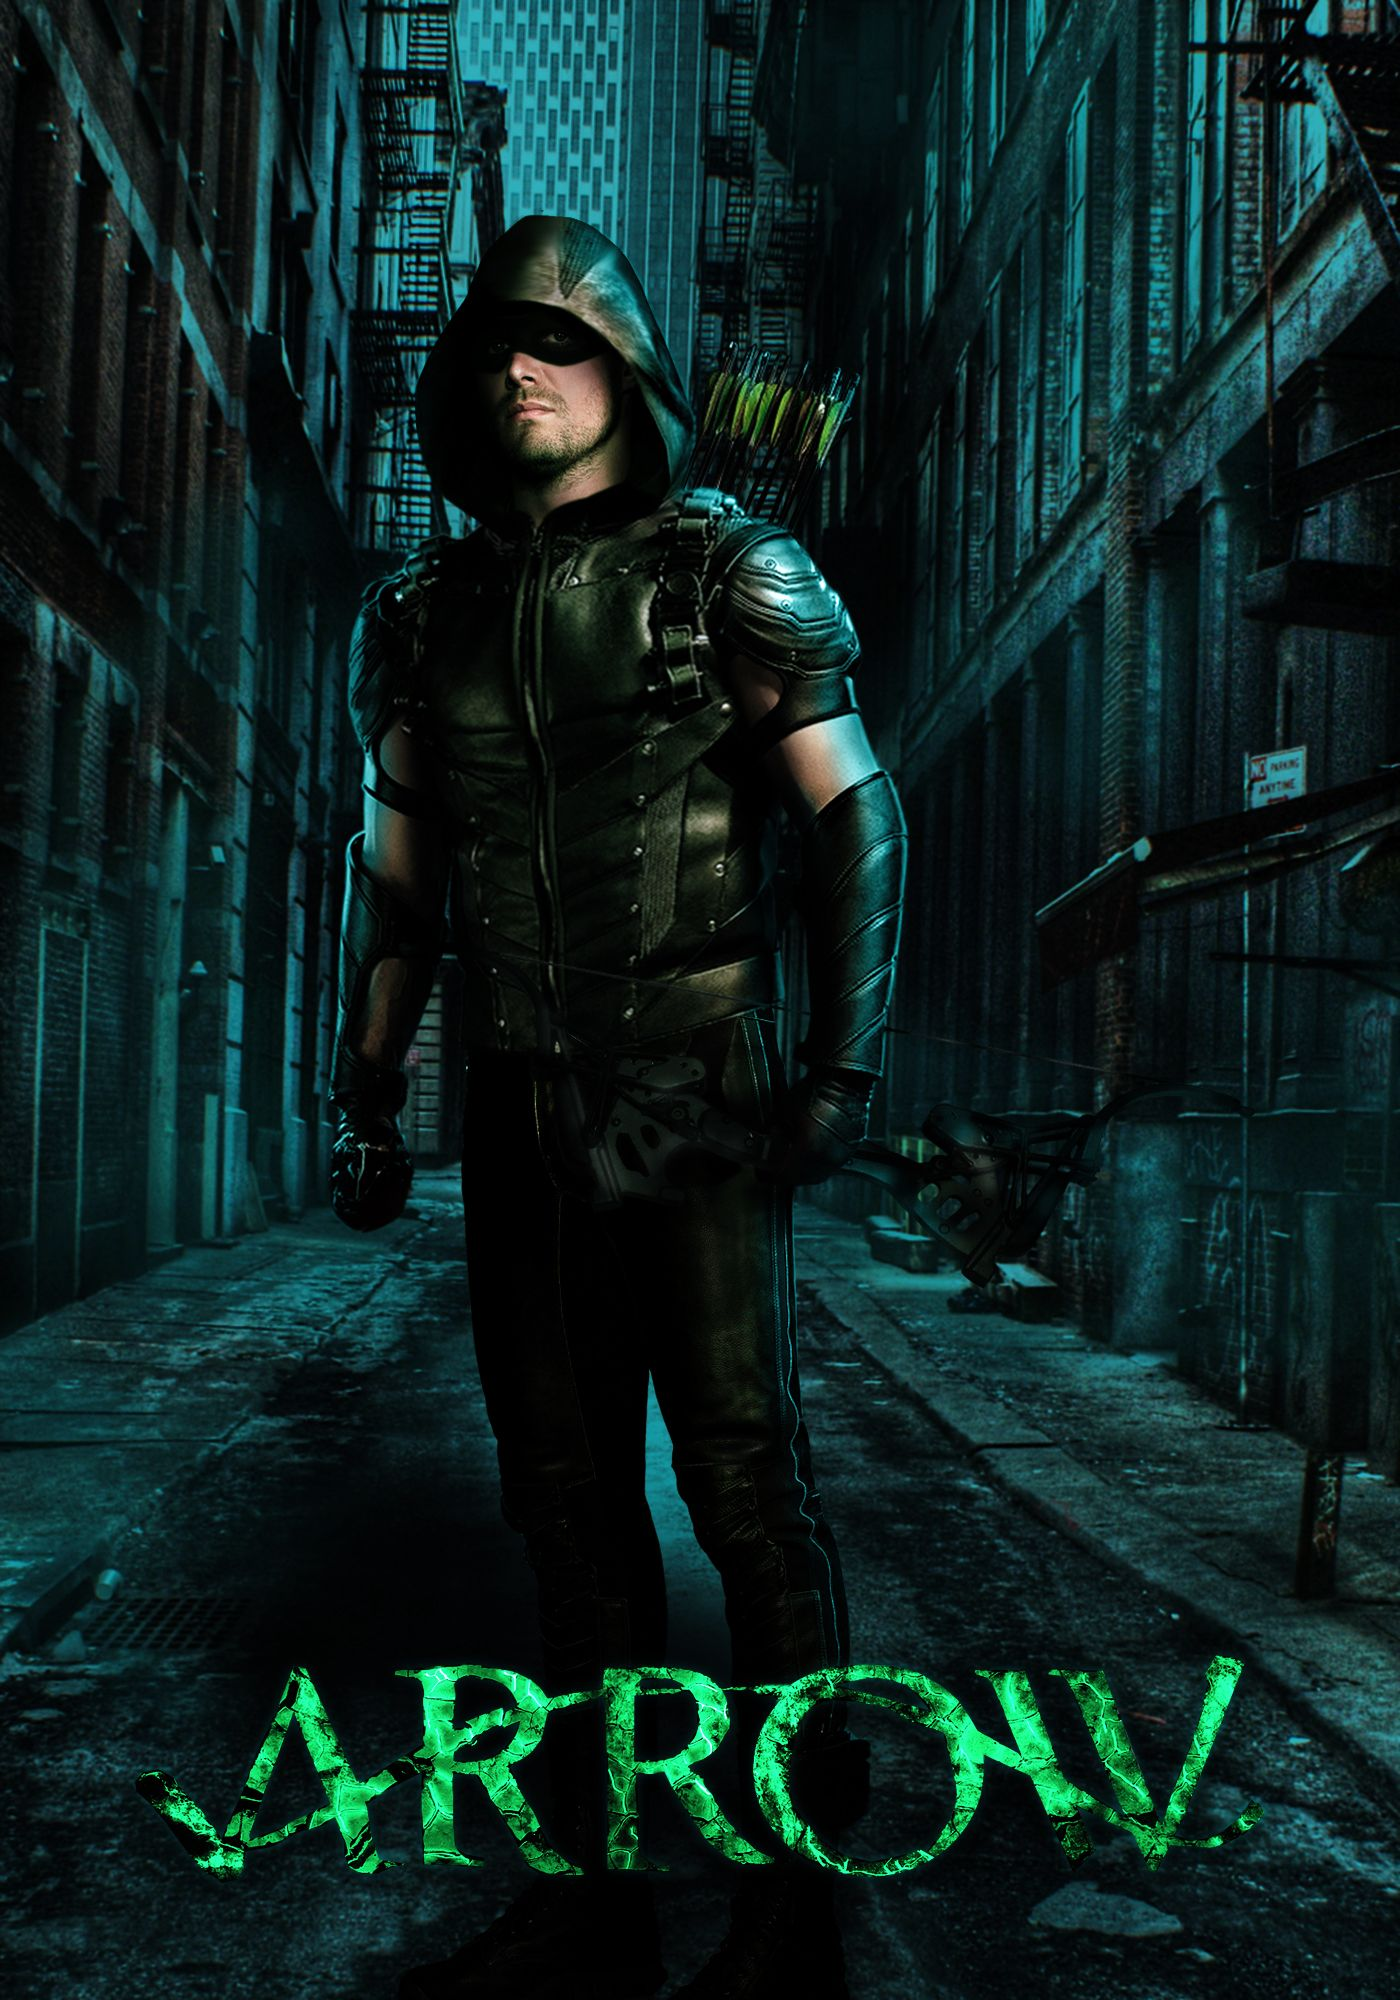 Arrow Season 5 Poster Oliver Queen The Green Arrow Com Imagens